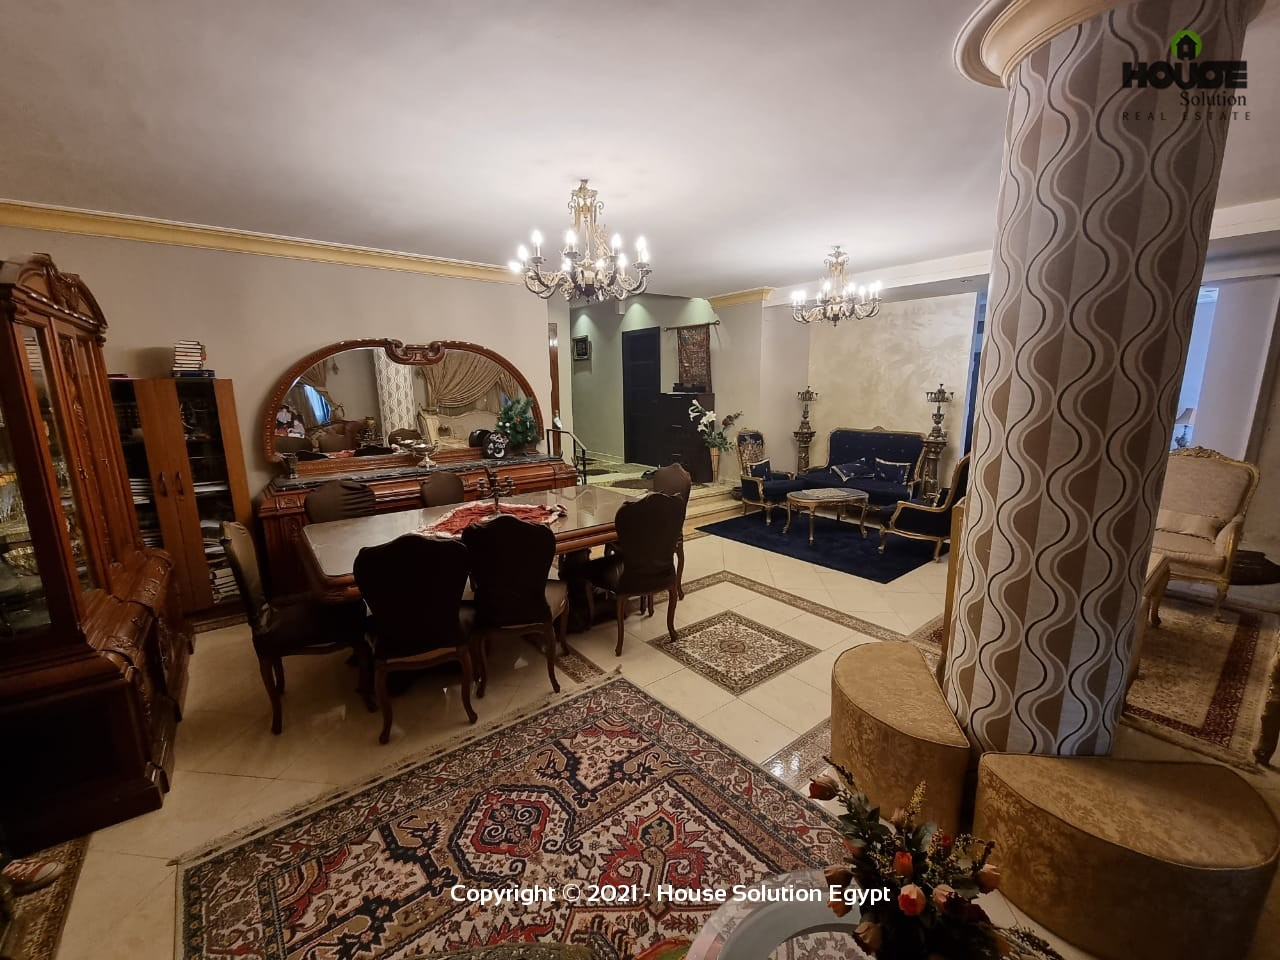 Spacious Fully Furnished Apartment For Rent In Degla El Maadi - 5014 Featured Image